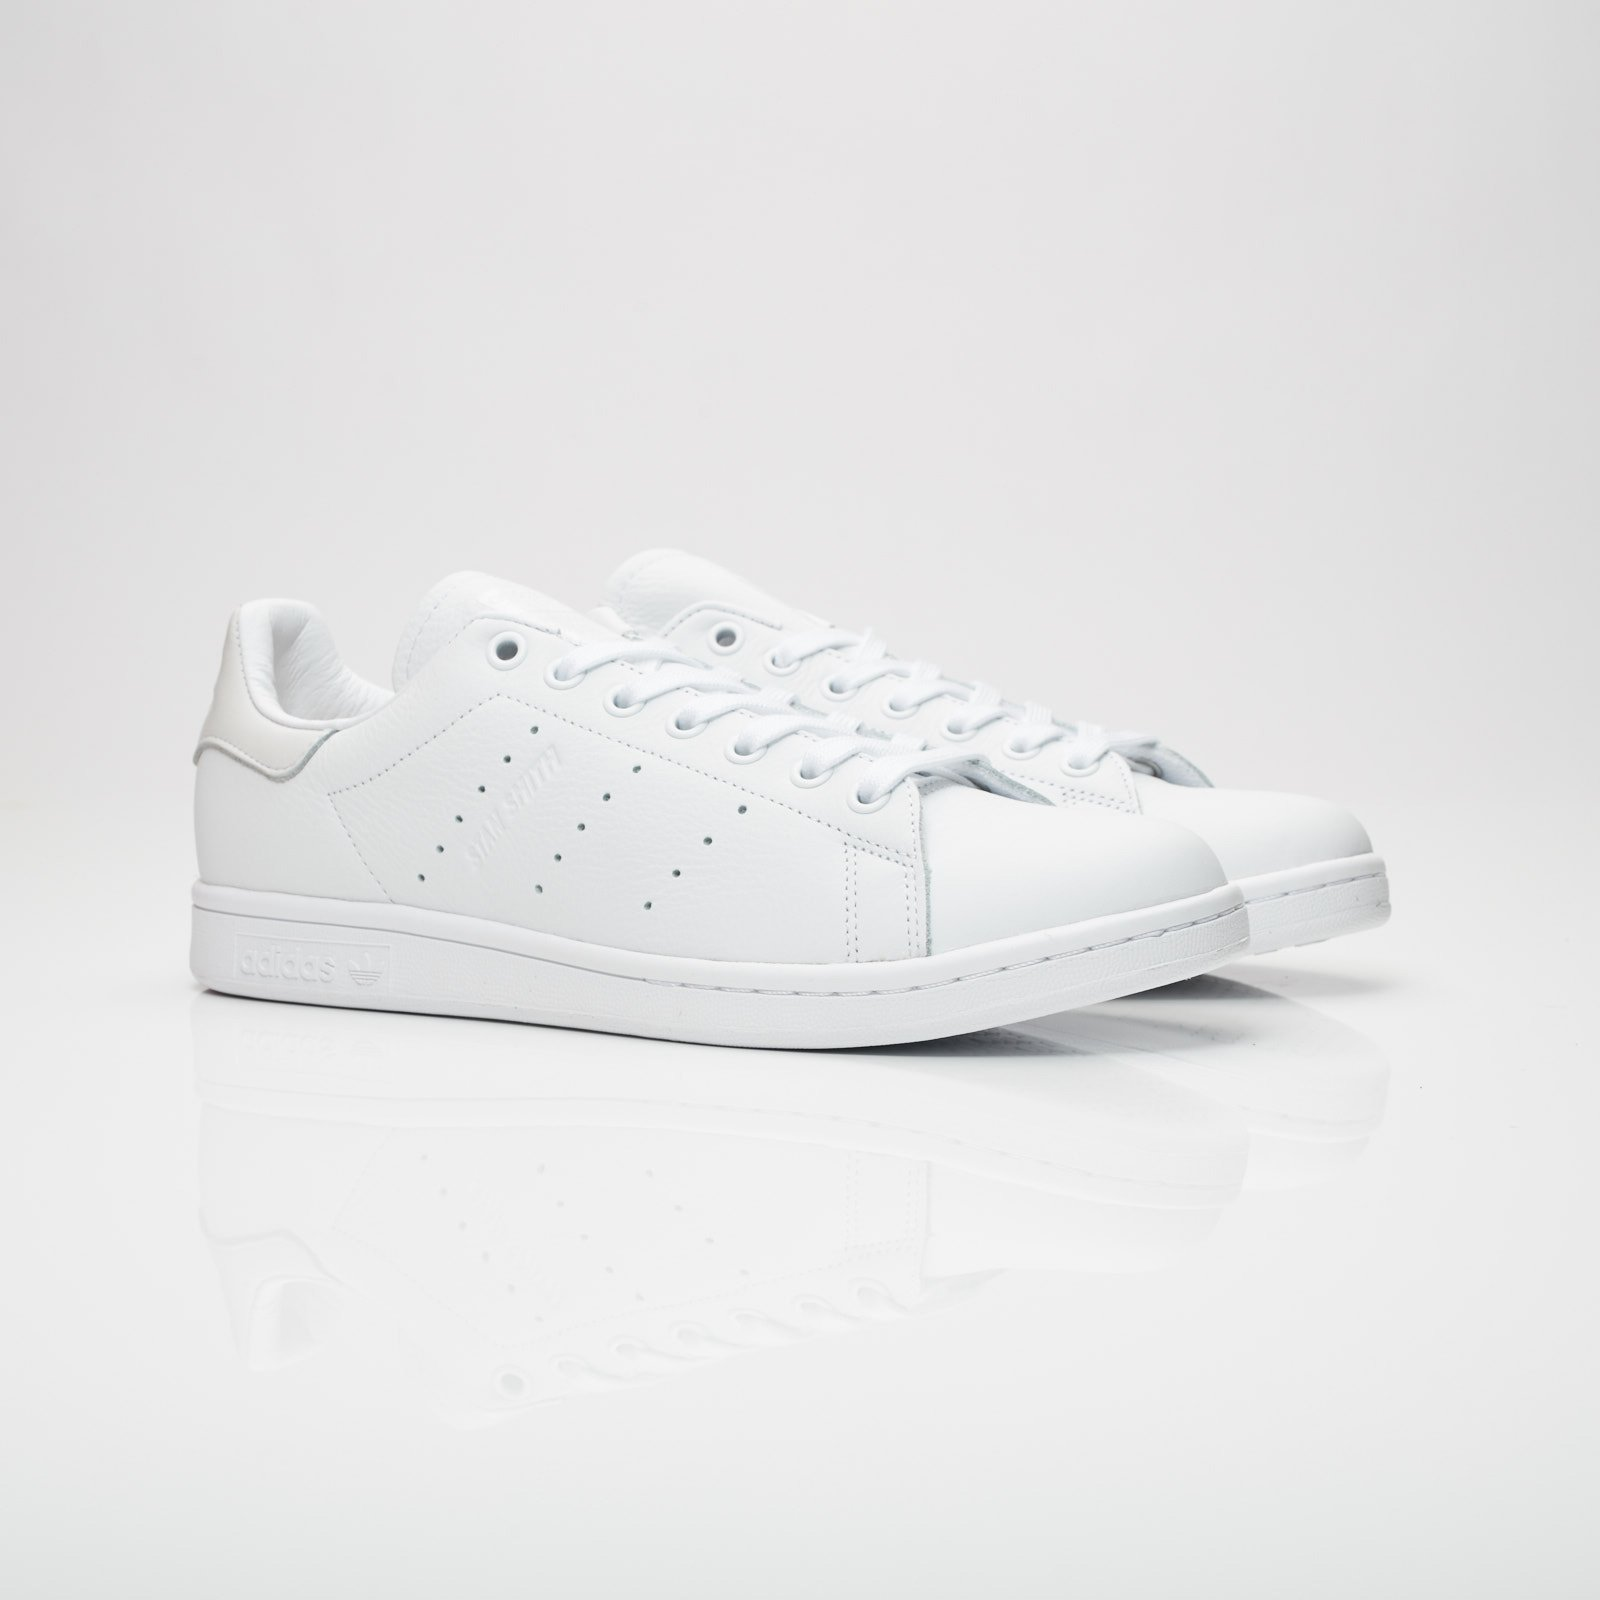 free shipping 2a25d d5c75 adidas Stan Smith - Cq2198 - Sneakersnstuff | sneakers ...